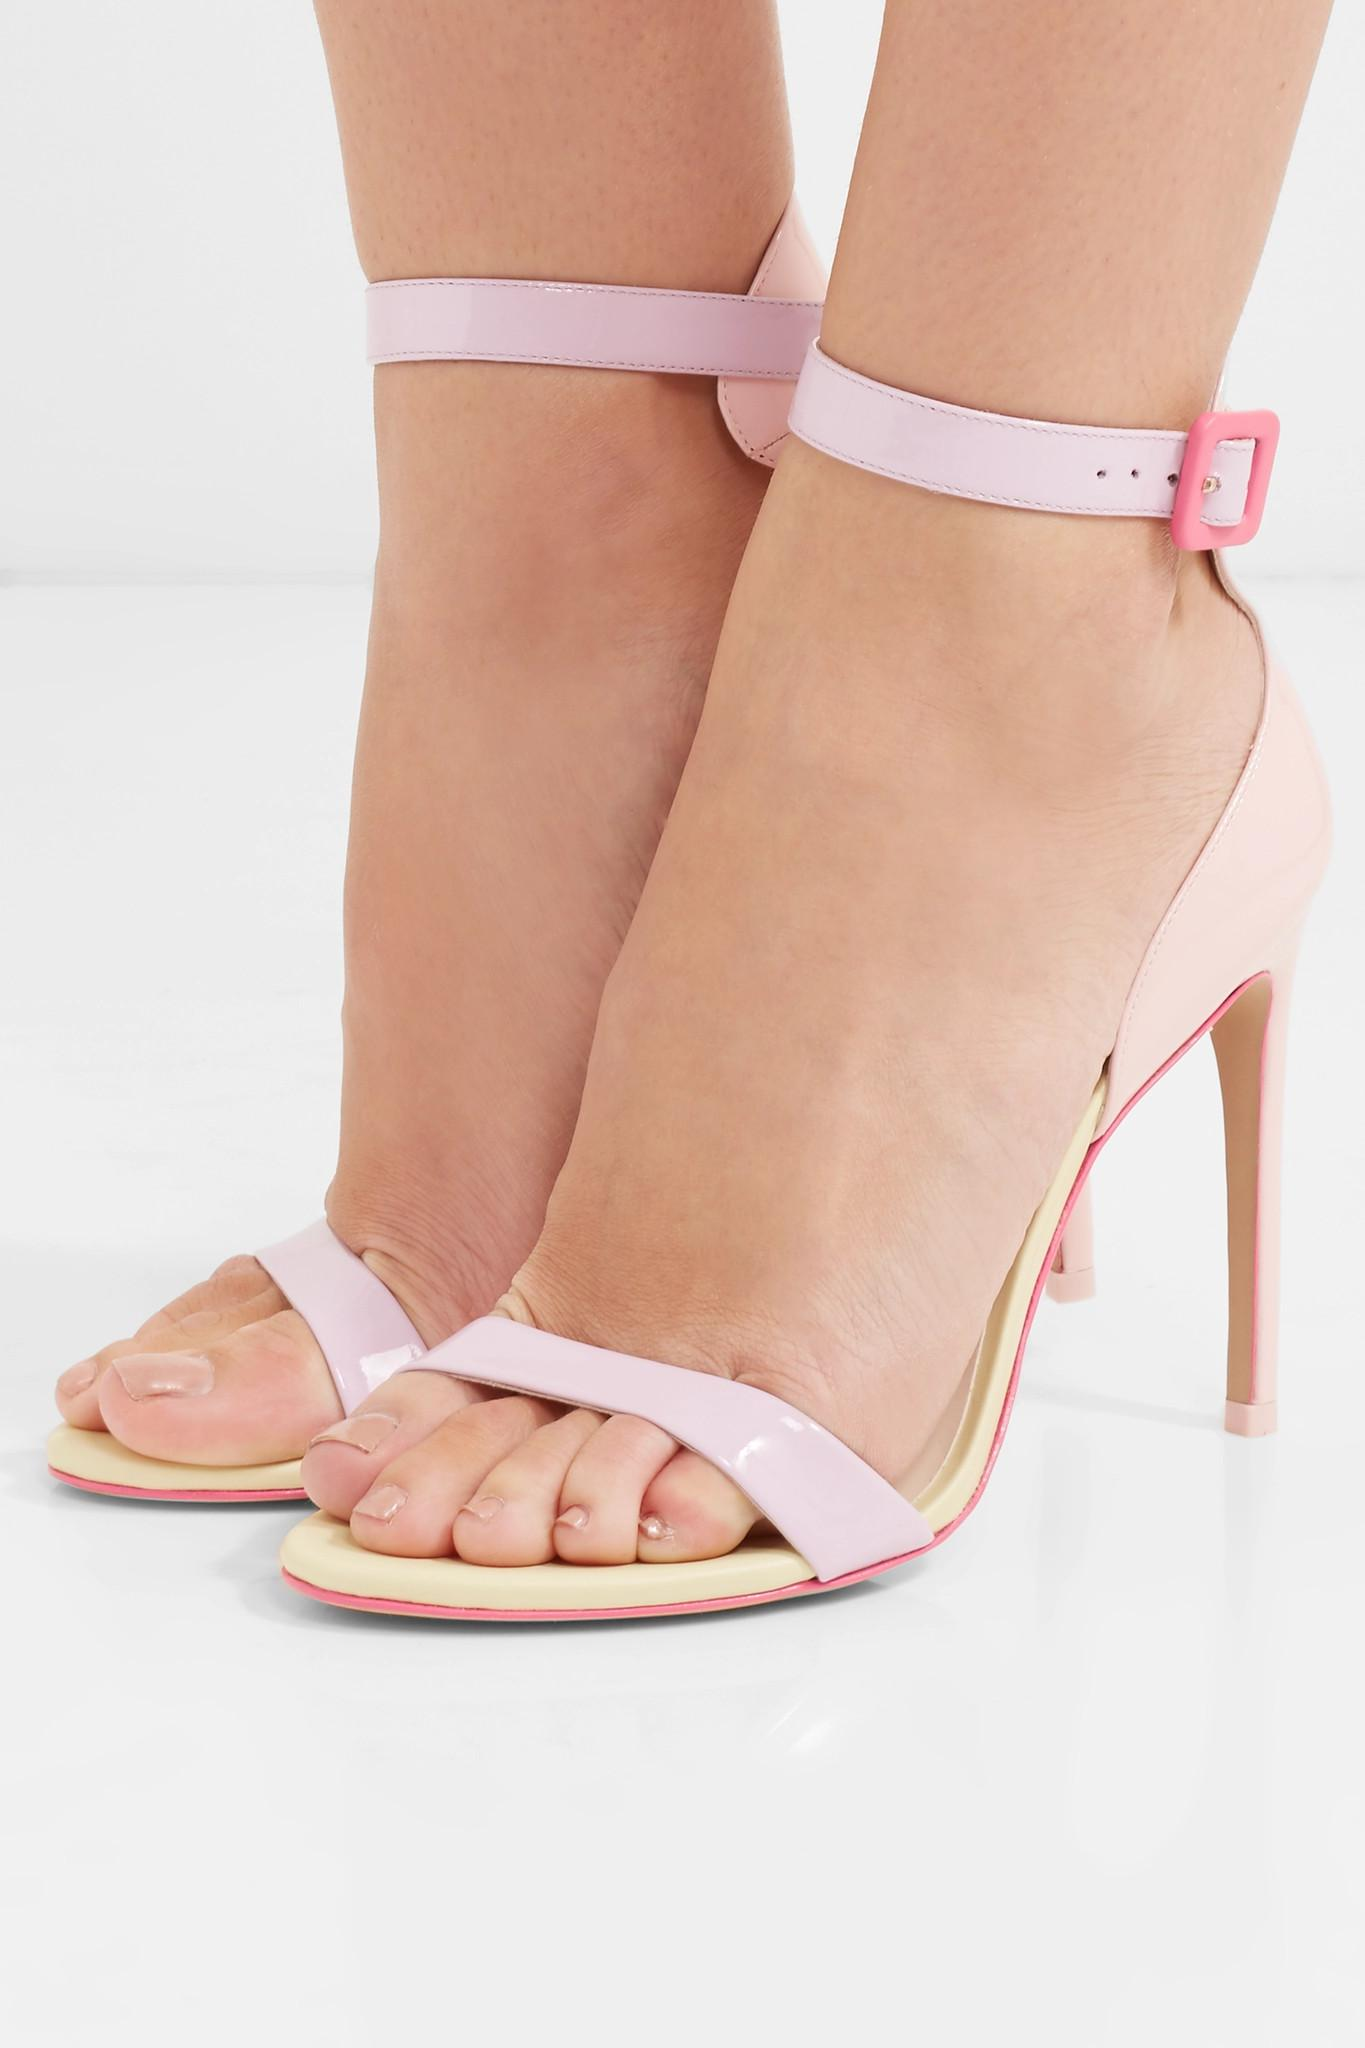 c6a9d49a2fa Lyst - Sophia Webster Nicole Color-block Patent-leather Sandals in Pink